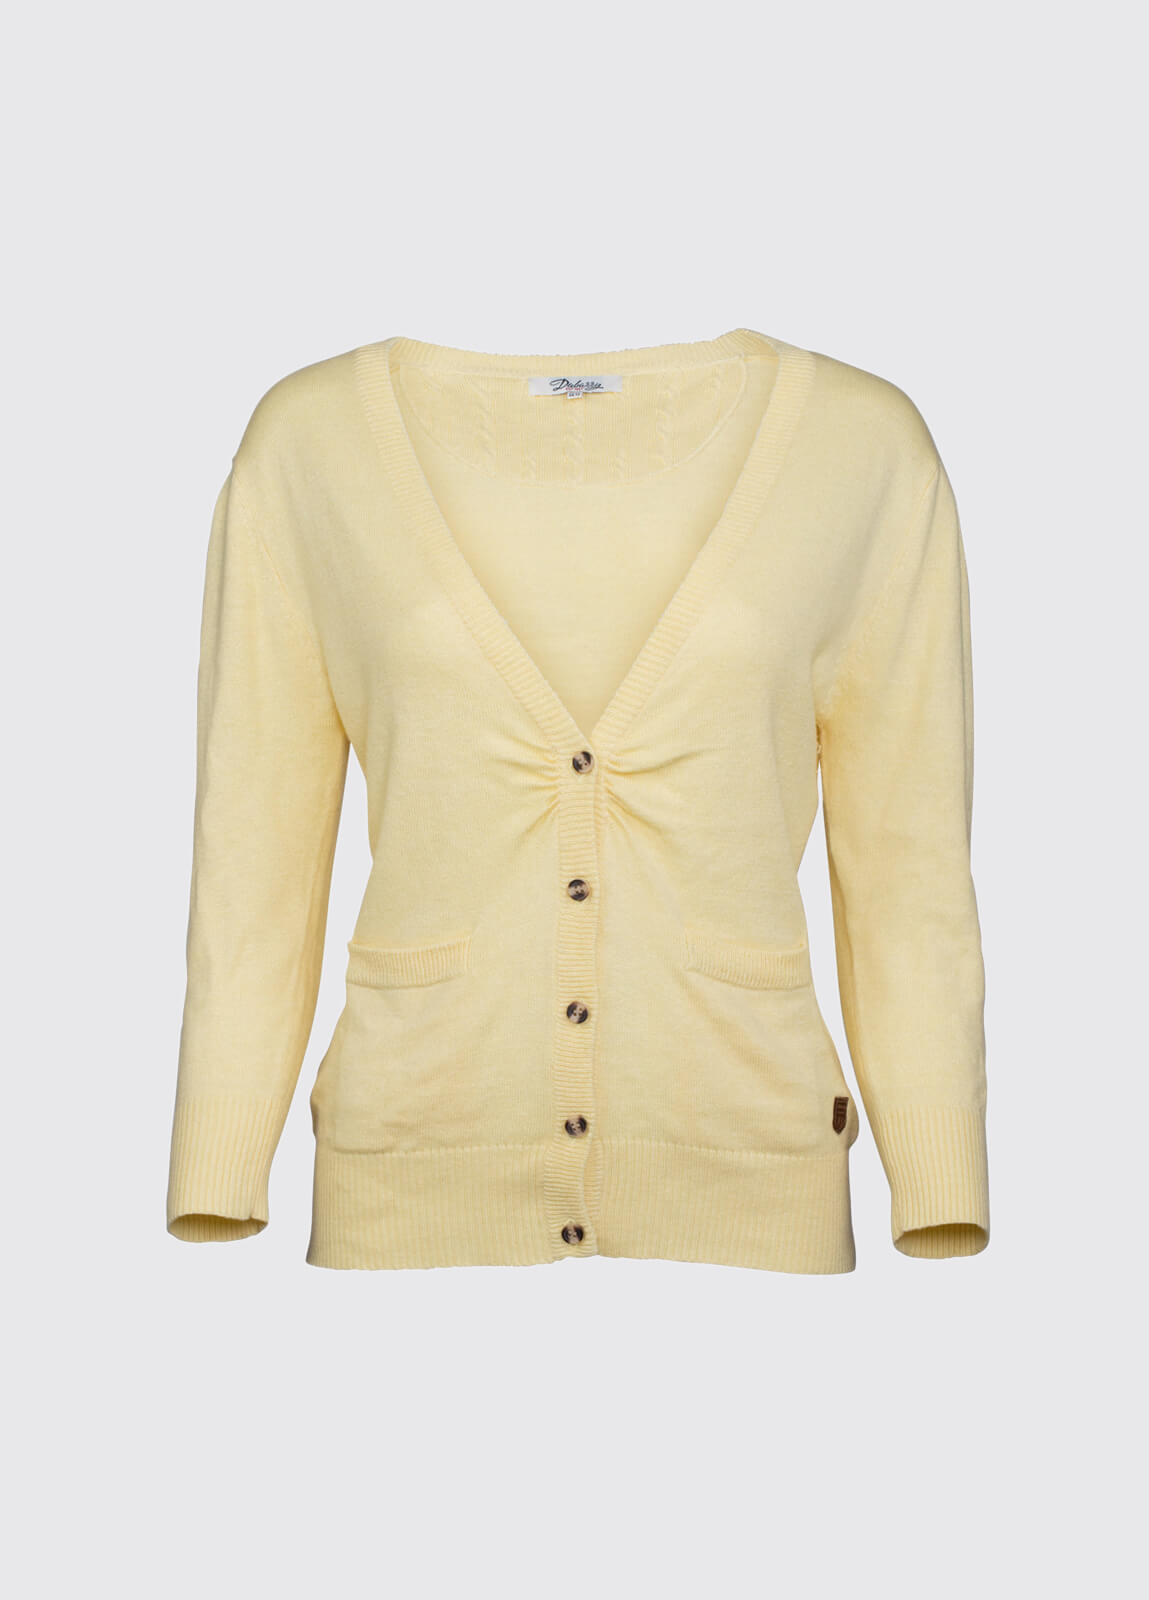 Clarecastle Ladies Cardigan - Lemon